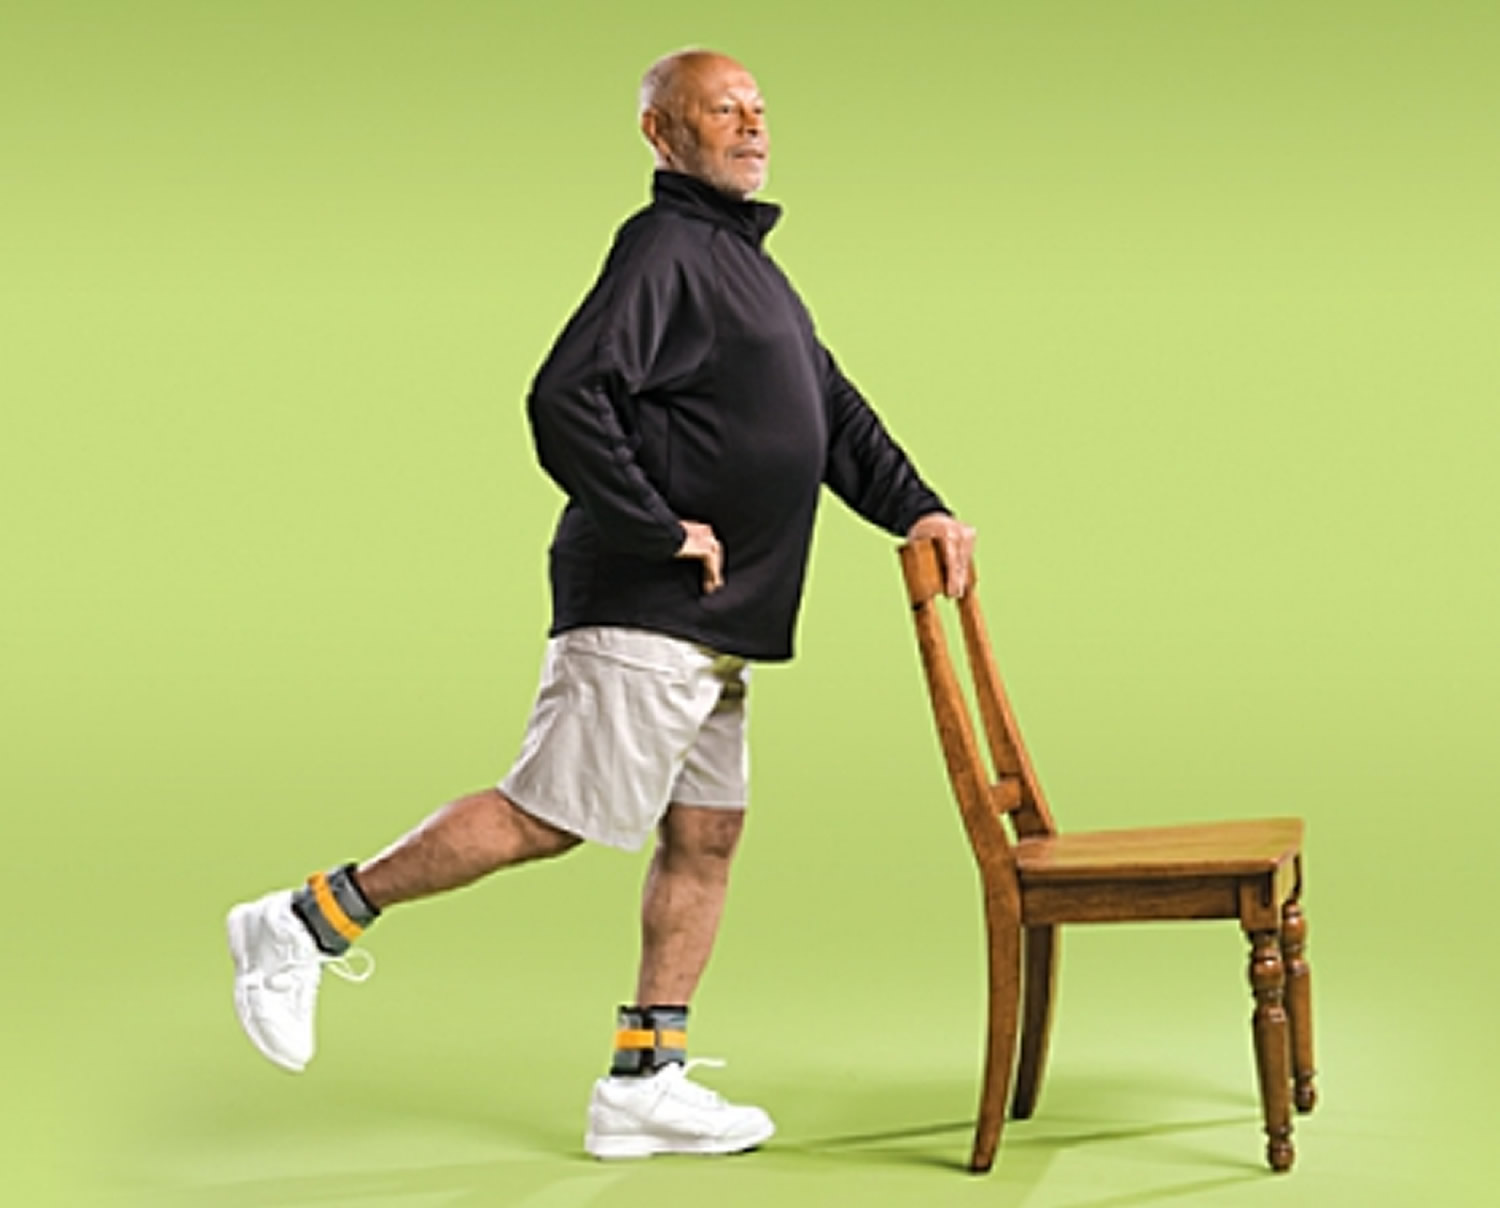 Back Leg Raise Strength Exercise for Seniors